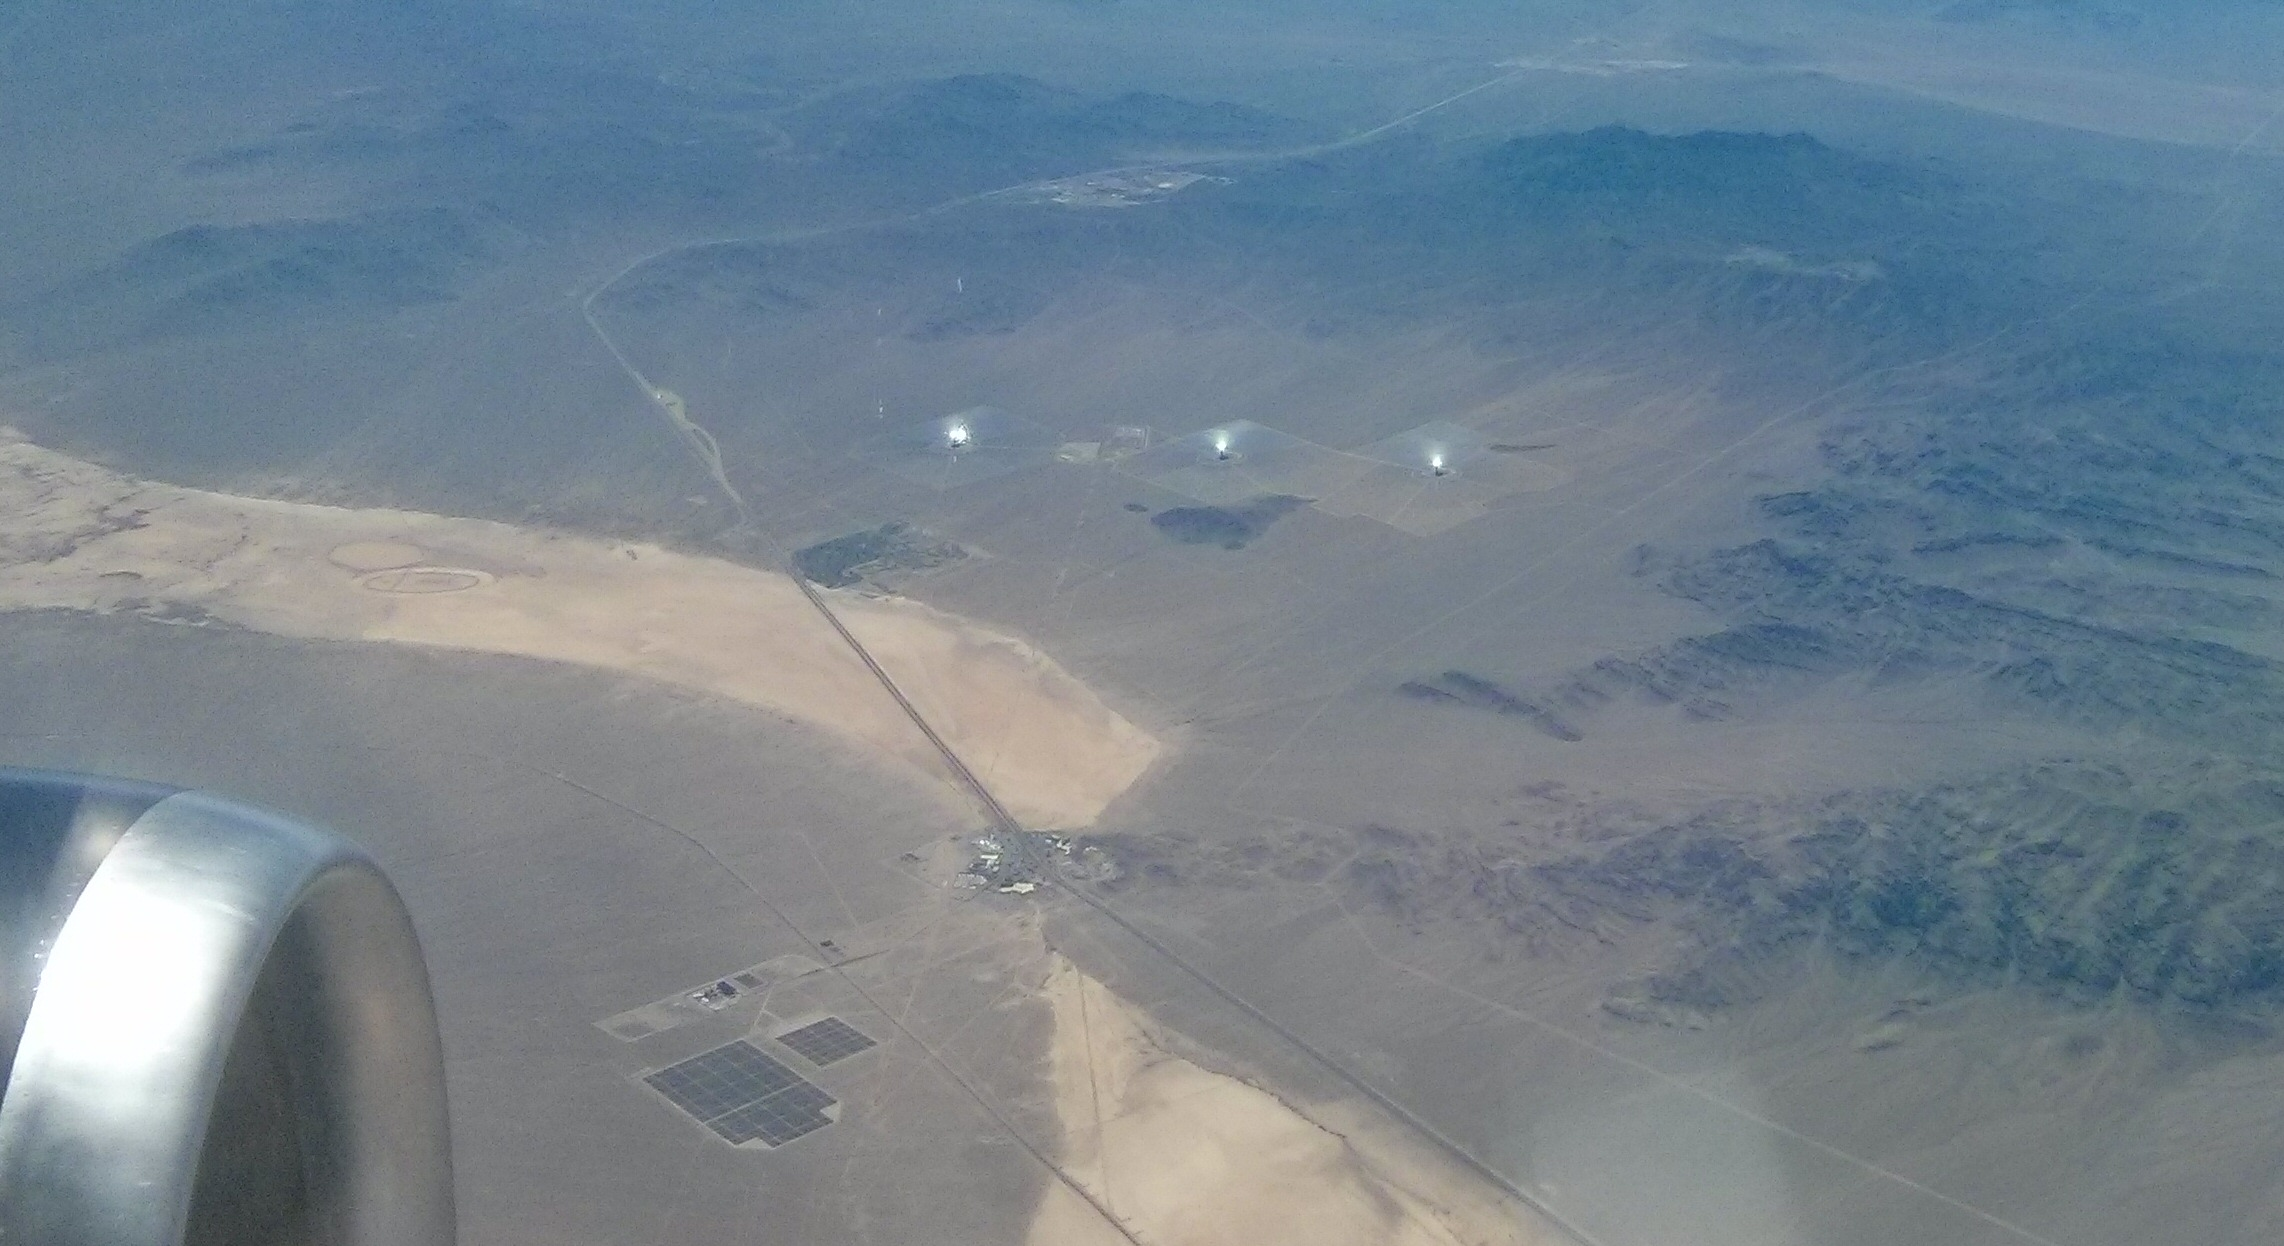 A Birds Eye View Of The Bird Scorching Ivanpah Solar